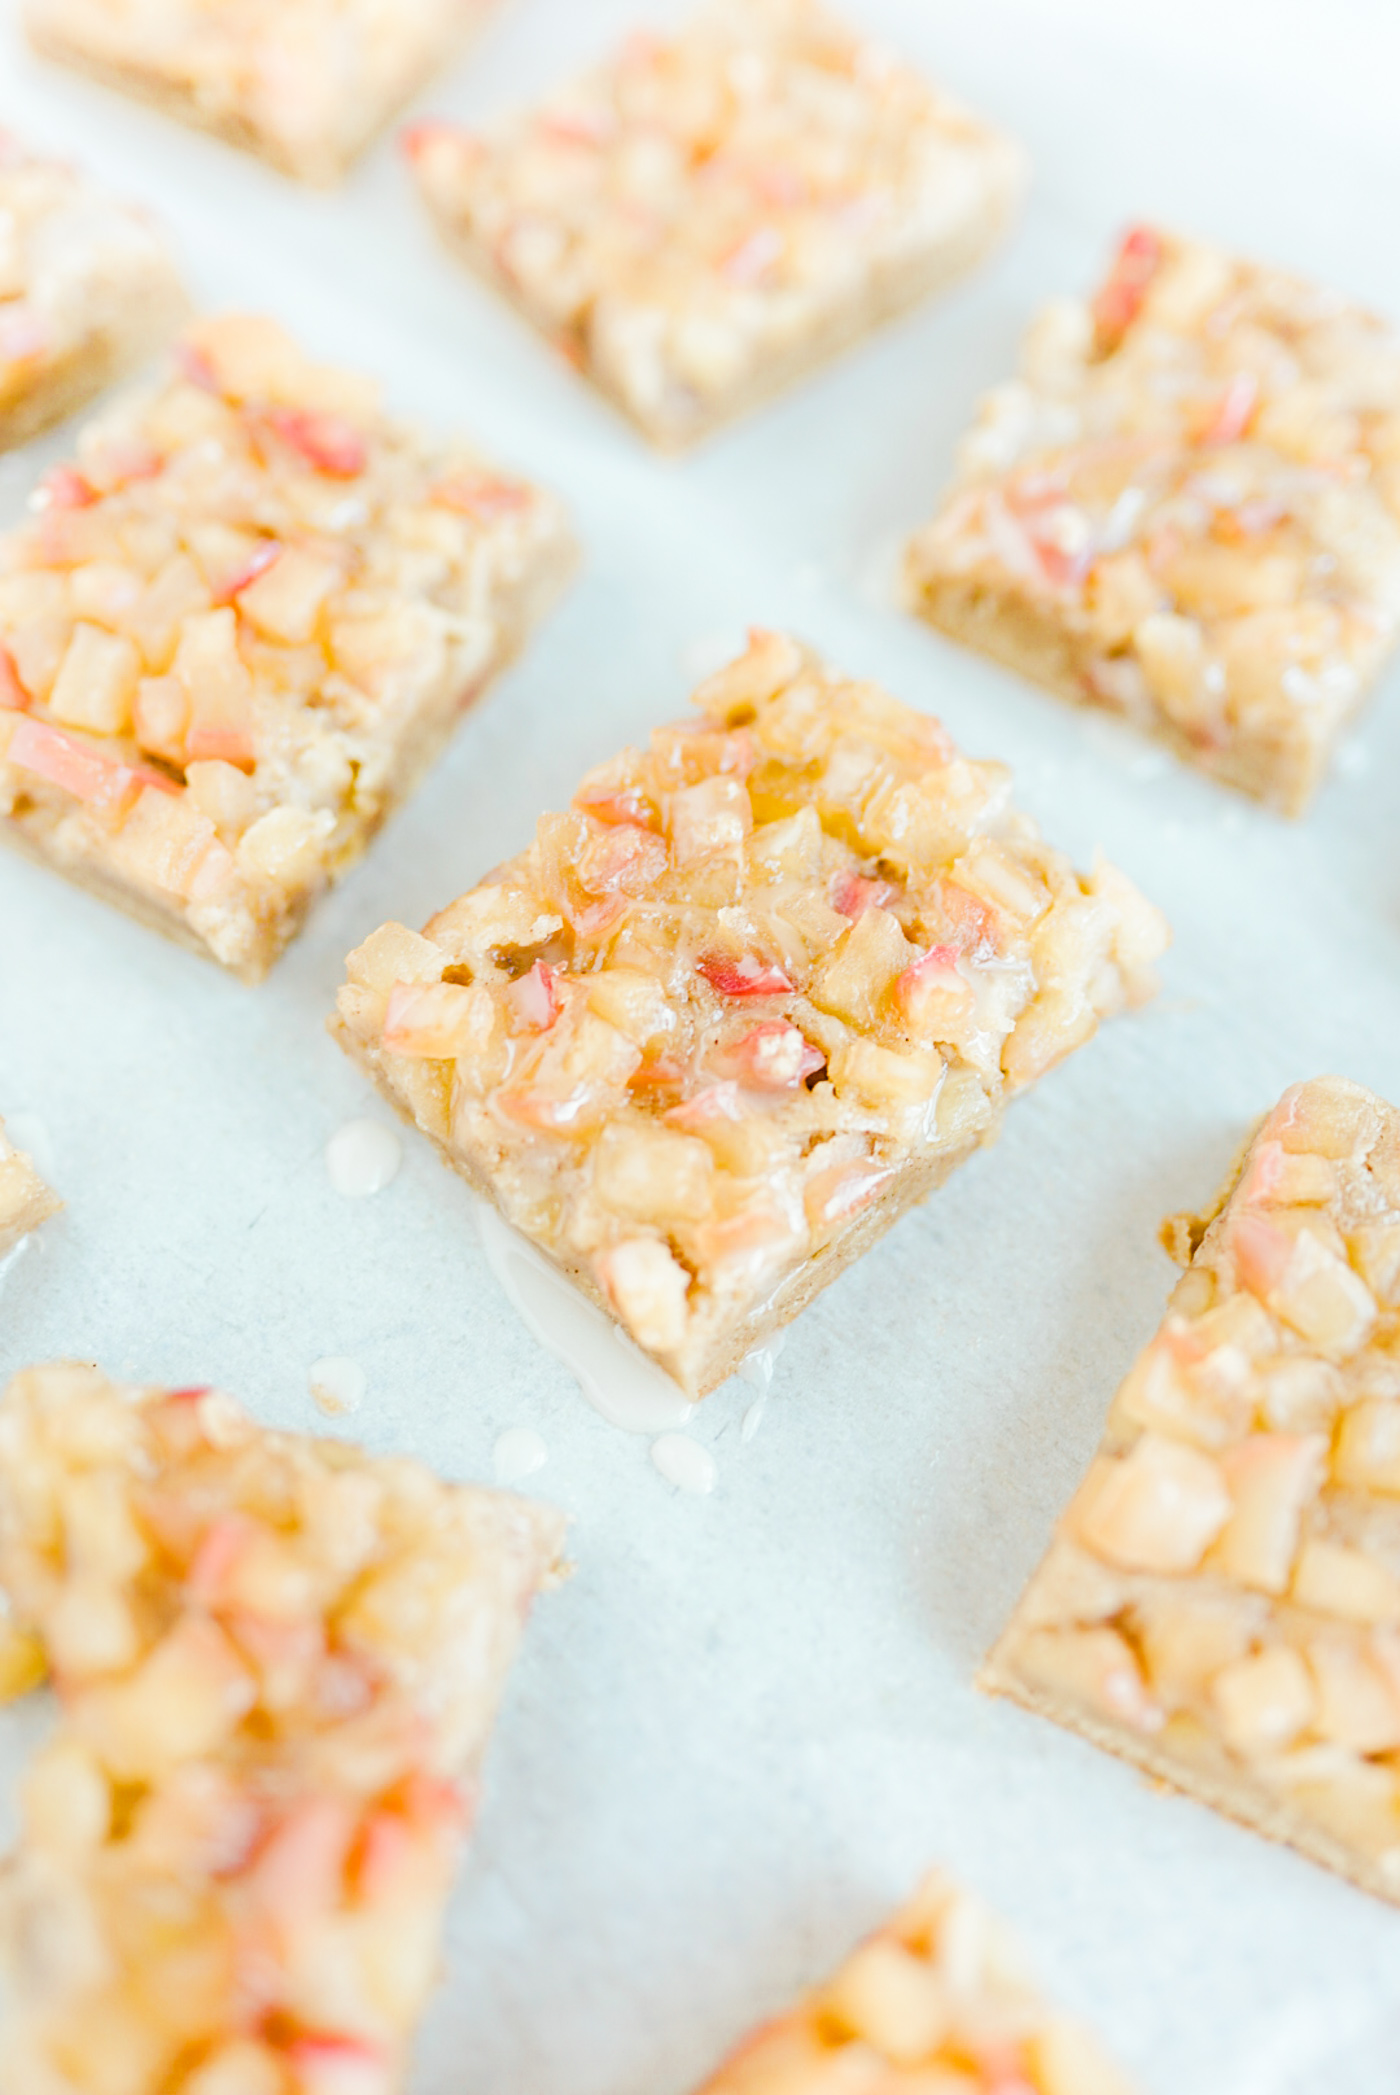 apple cider blondie squares with glaze on white parchment paper on gold baking sheet